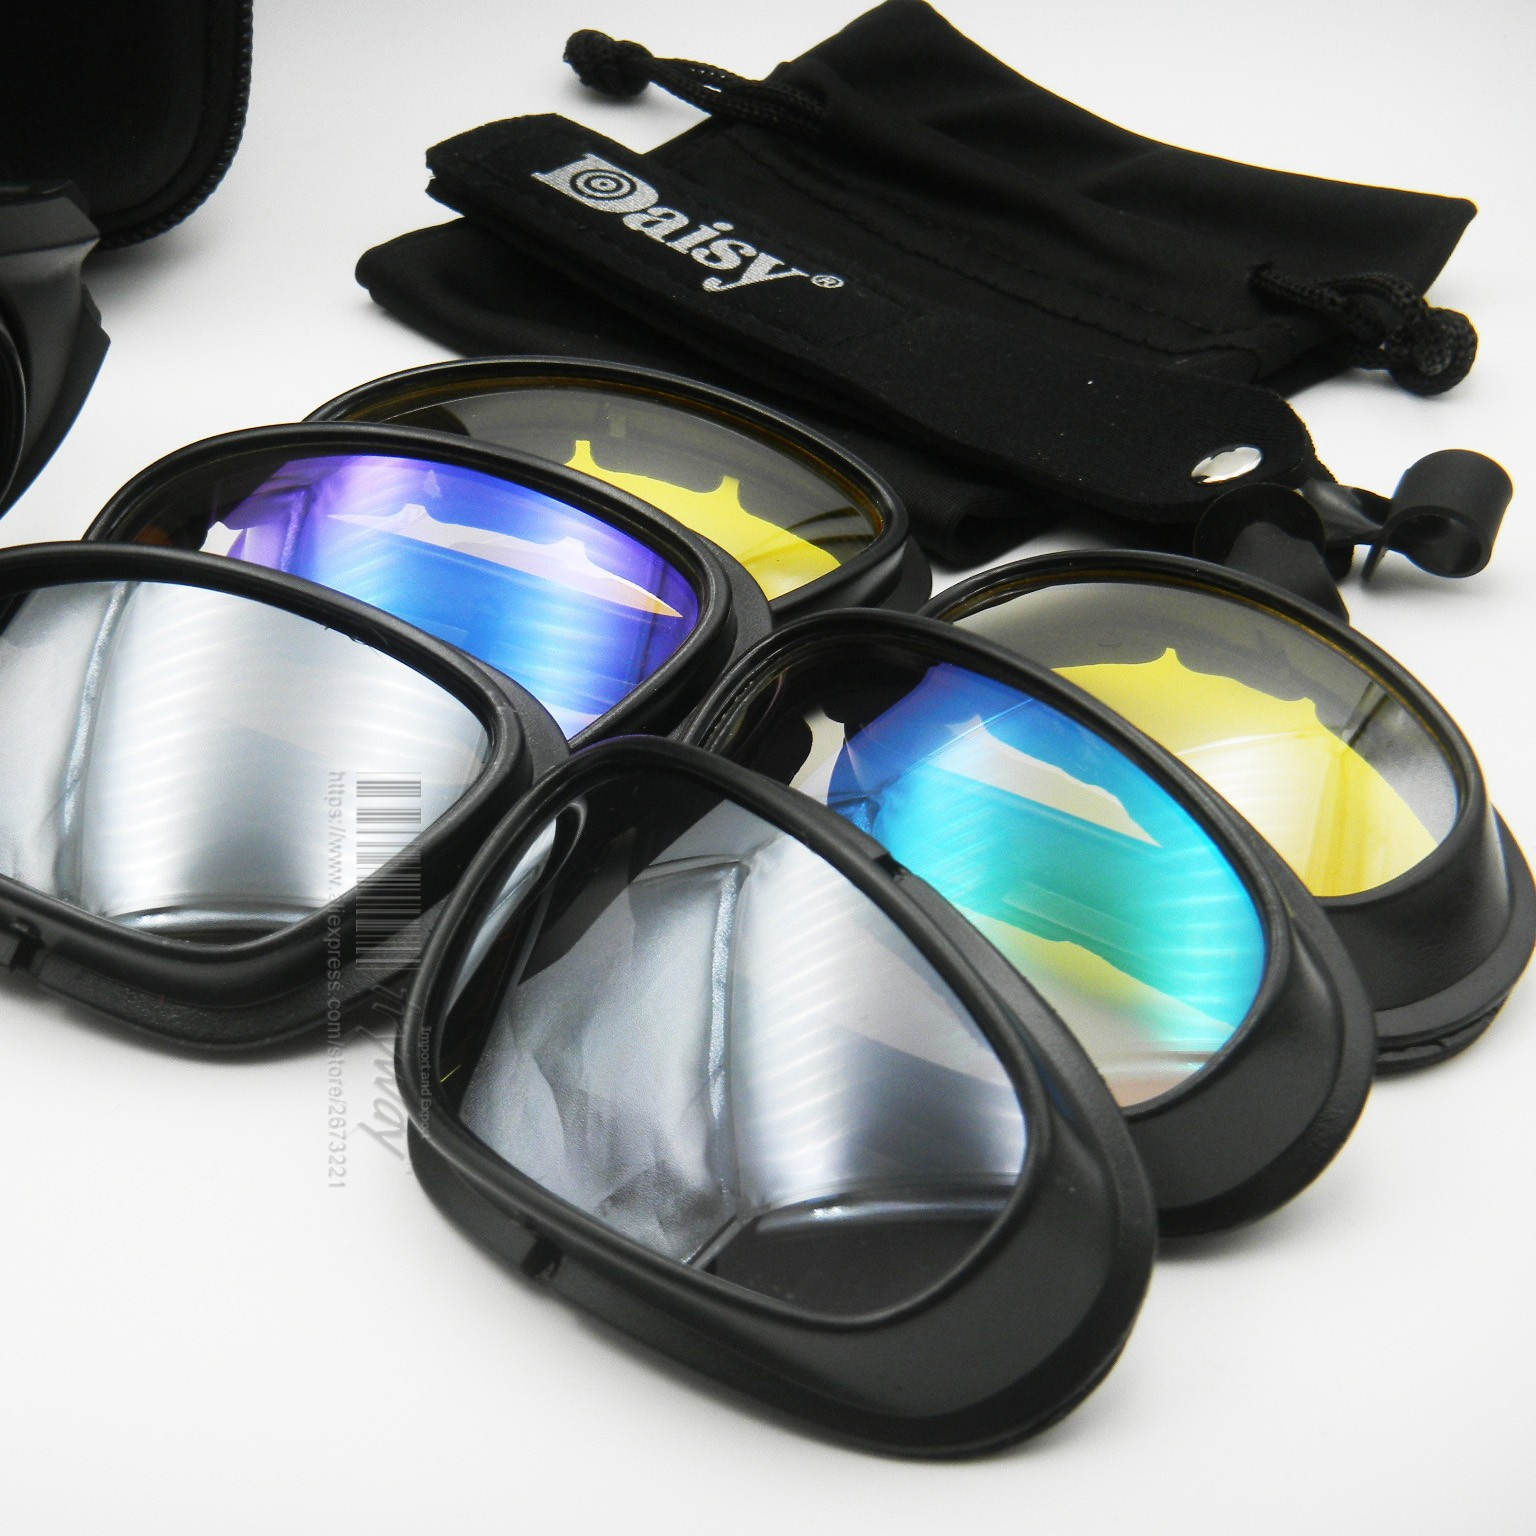 f7091bec22bf Daisy C5 Polarized Sunglasses Military Goggles Bullet Proof Desert ...